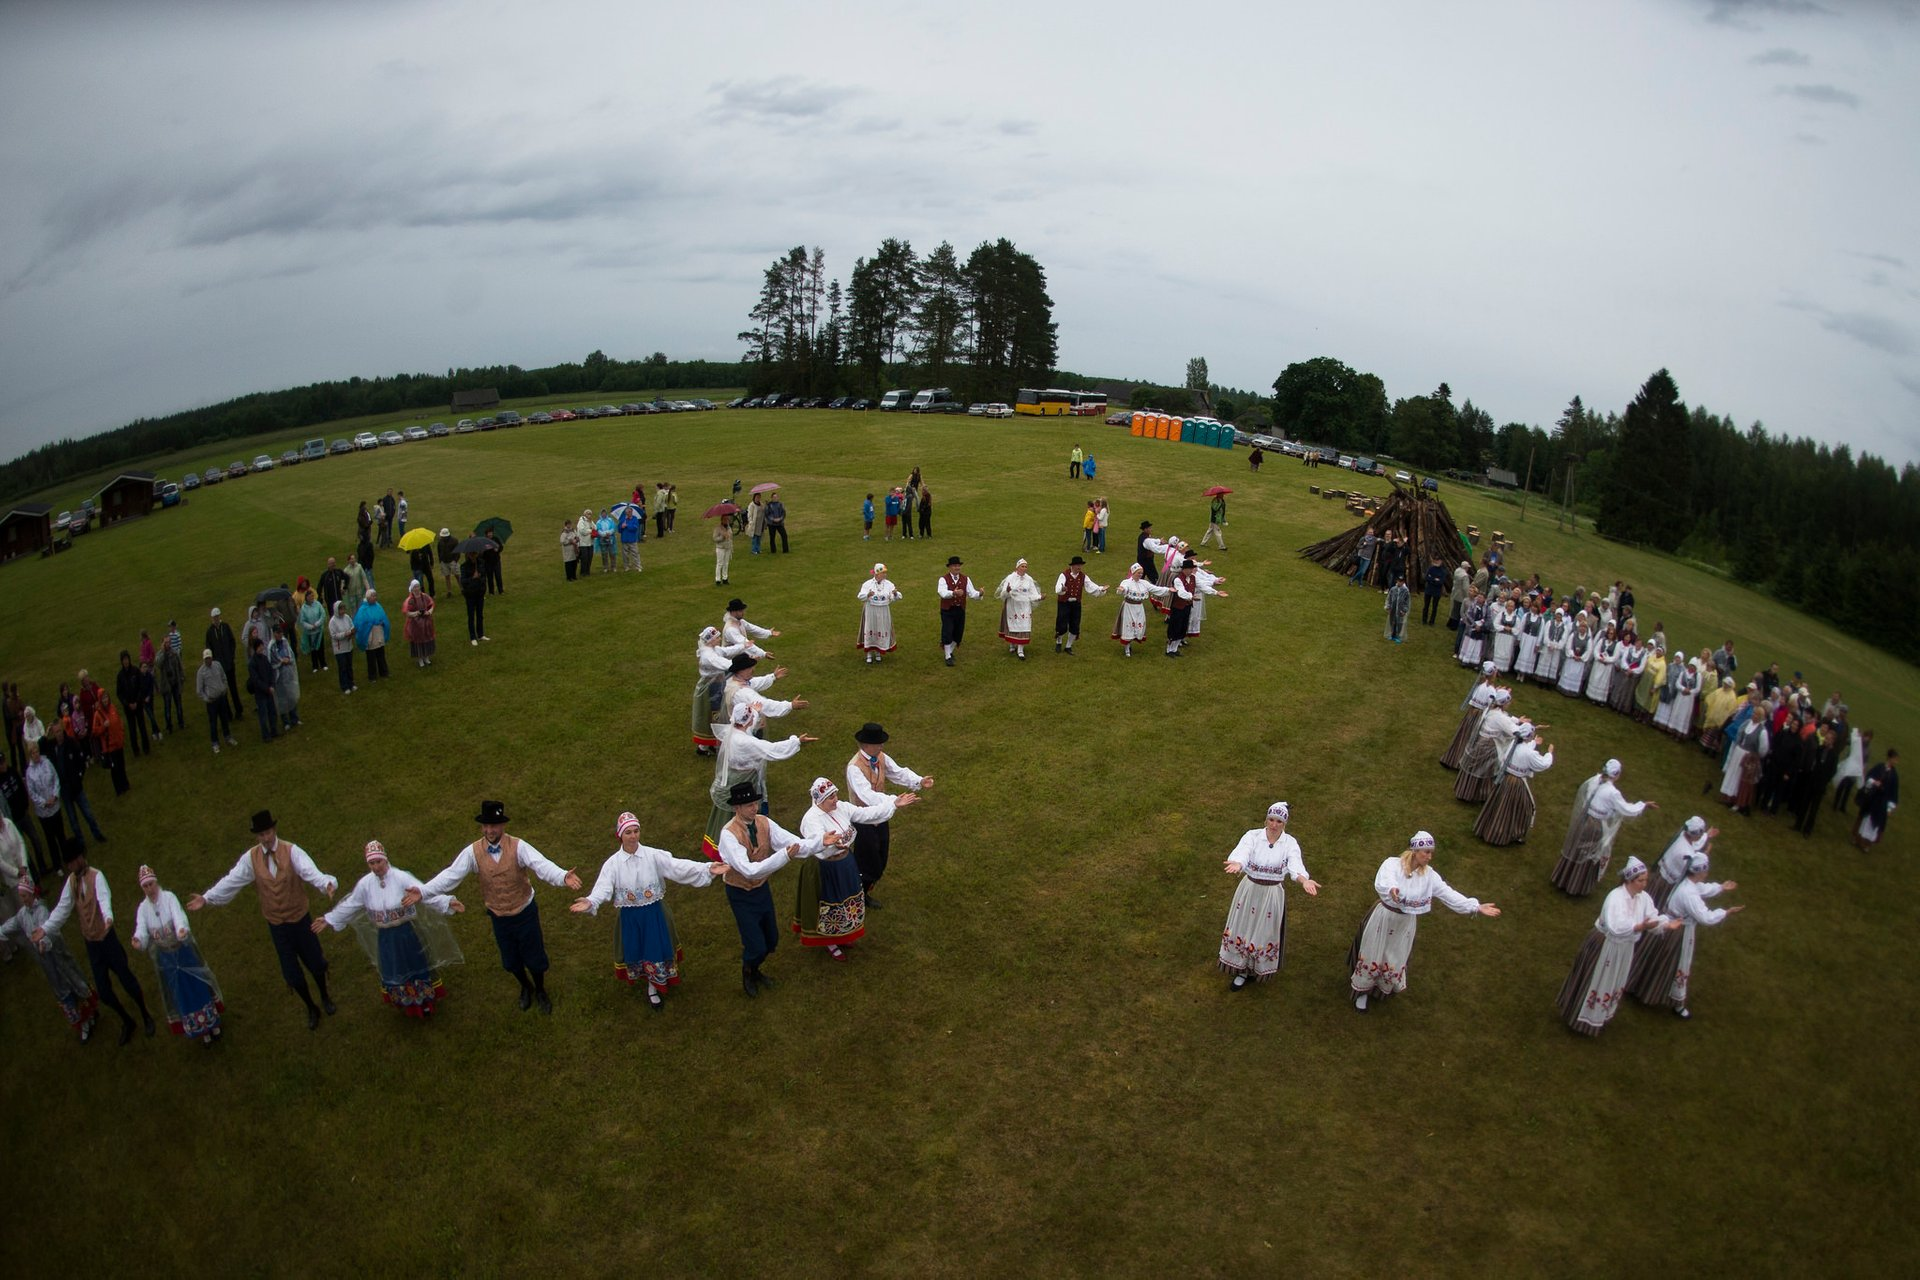 Best time to see Massive Song and Dance Celebration (Laulupidu) in Estonia 2020